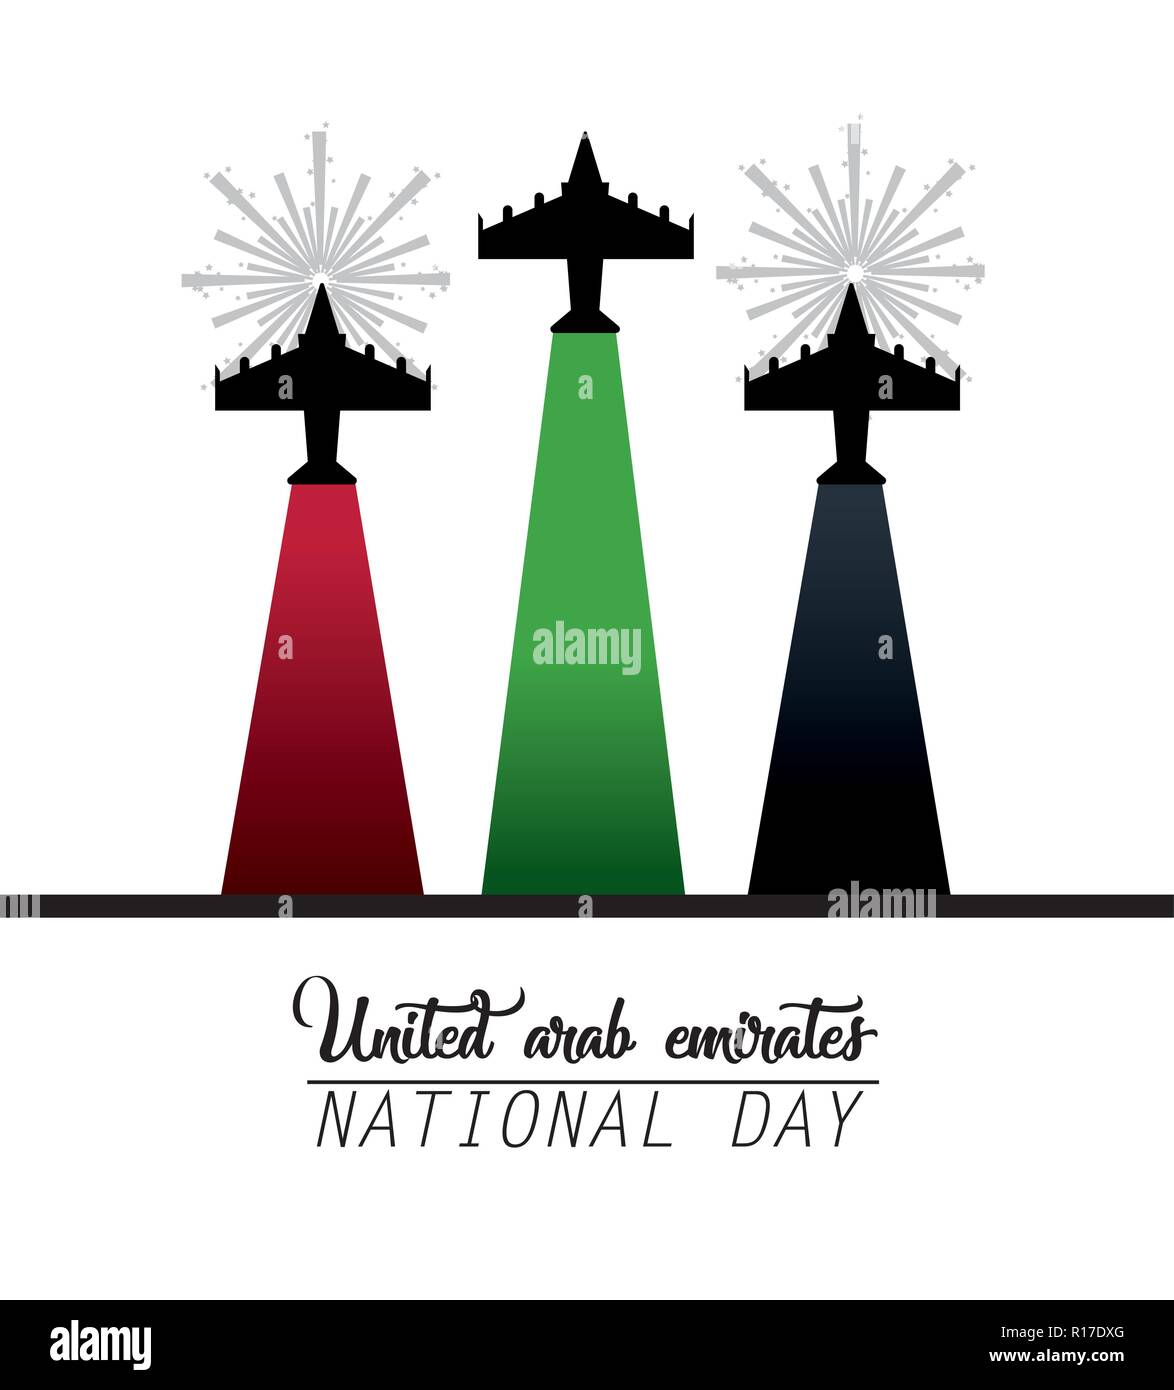 military airplanes to celebrate national day - Stock Image